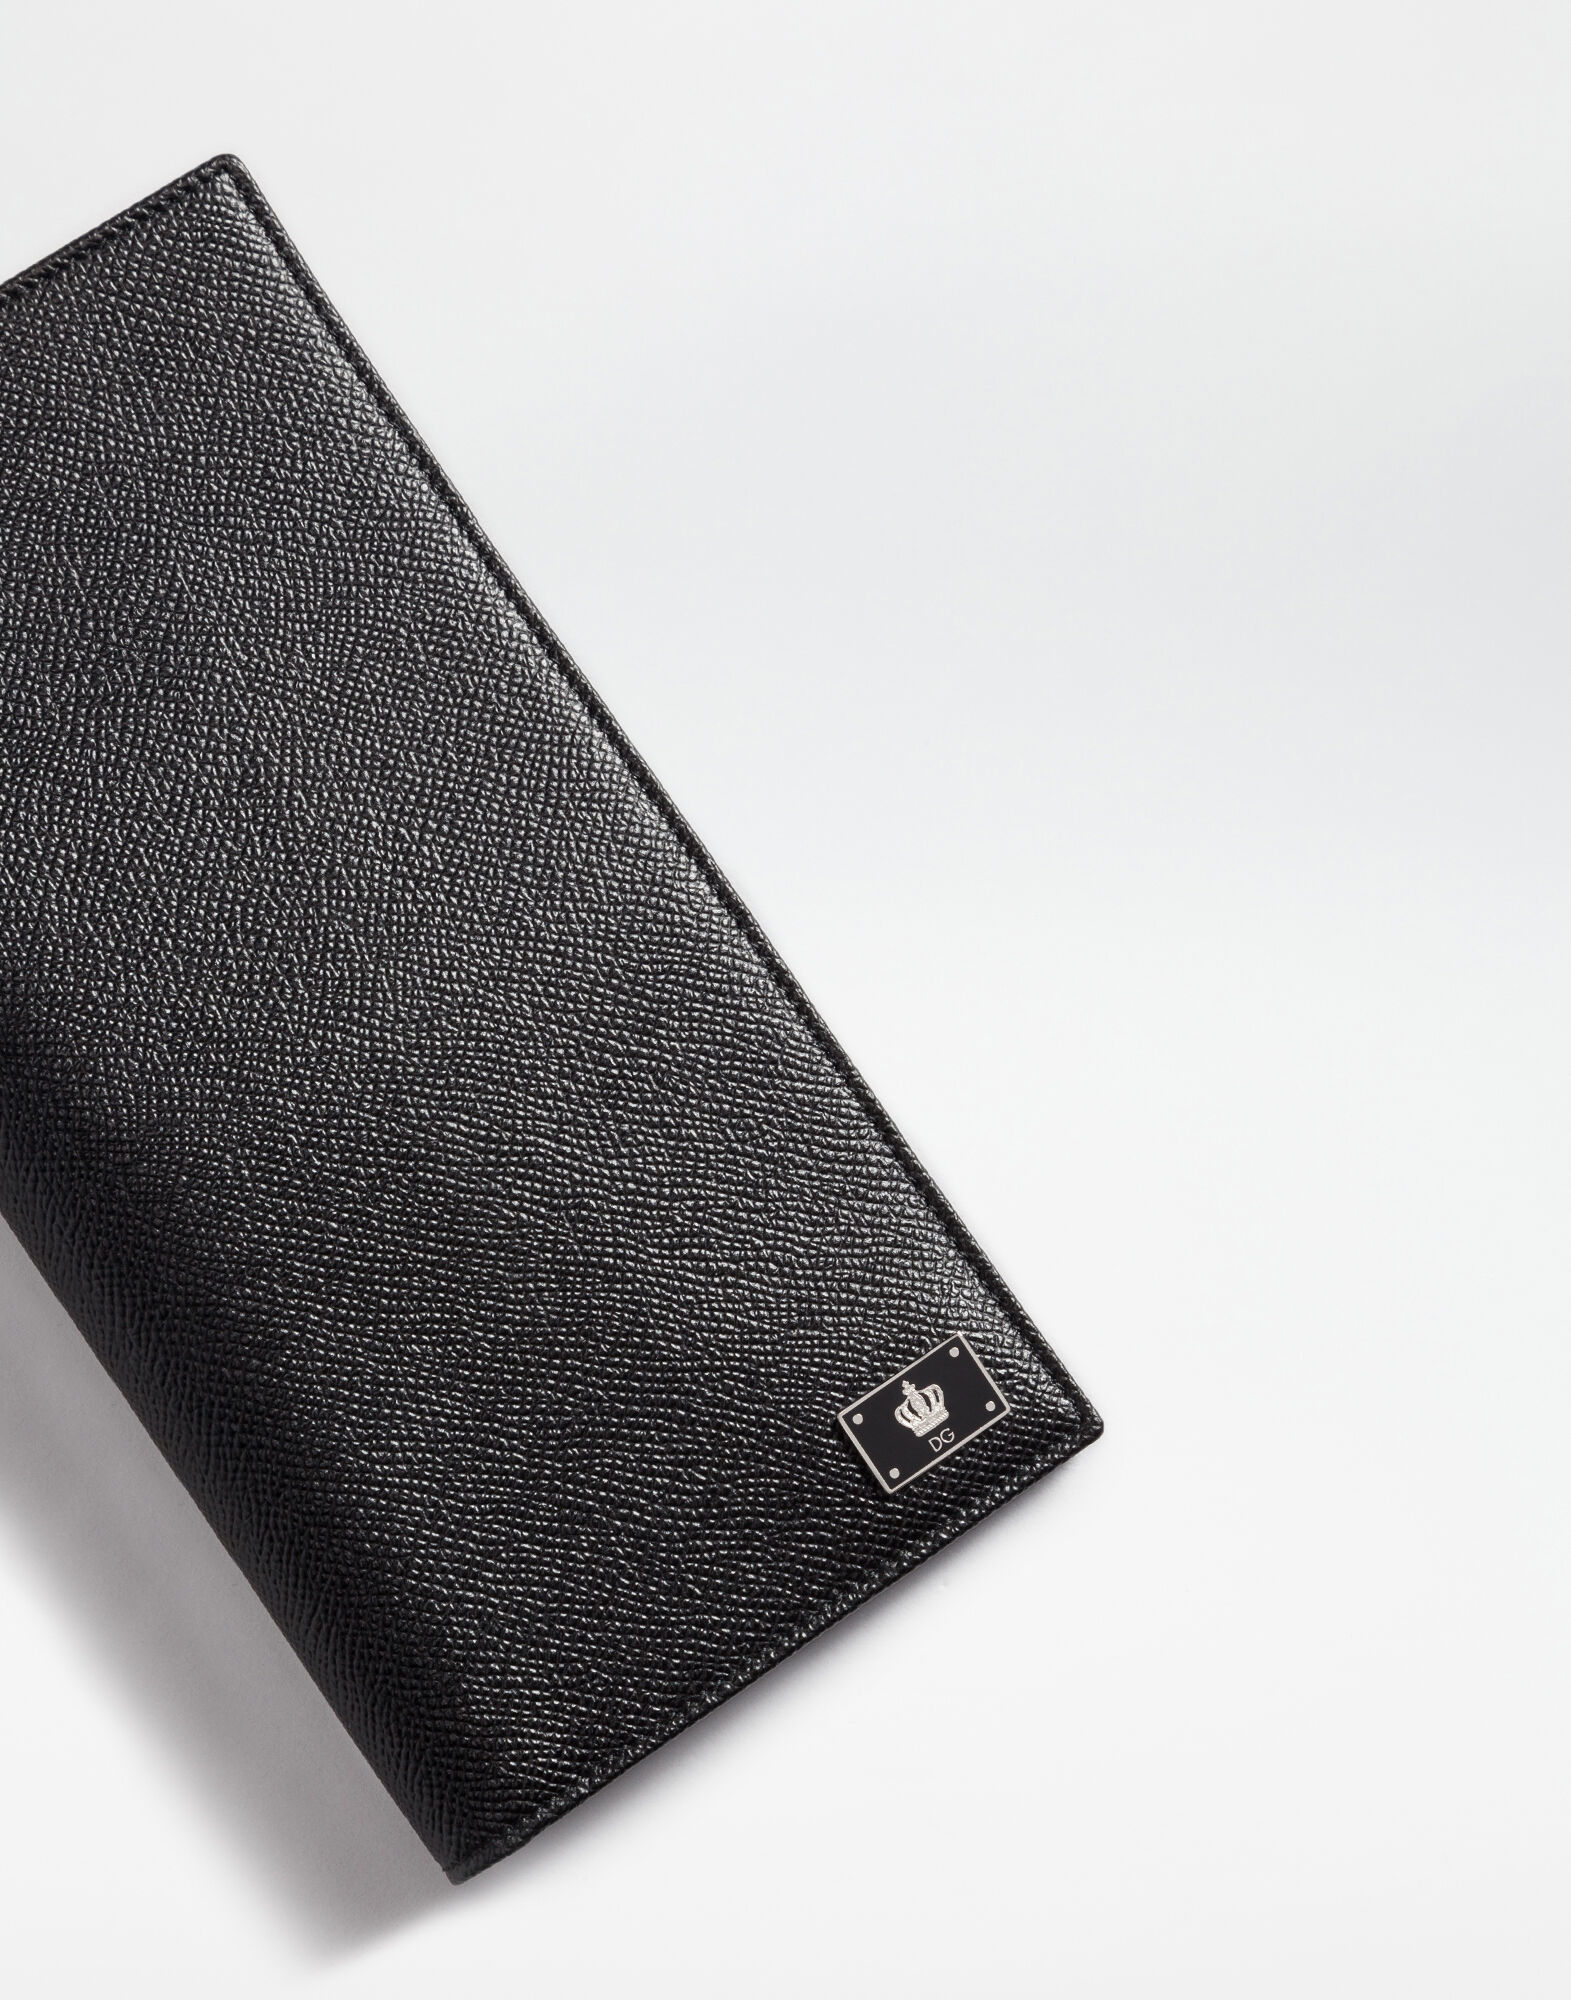 PASSPORT HOLDER IN DAUPHINE LEATHER